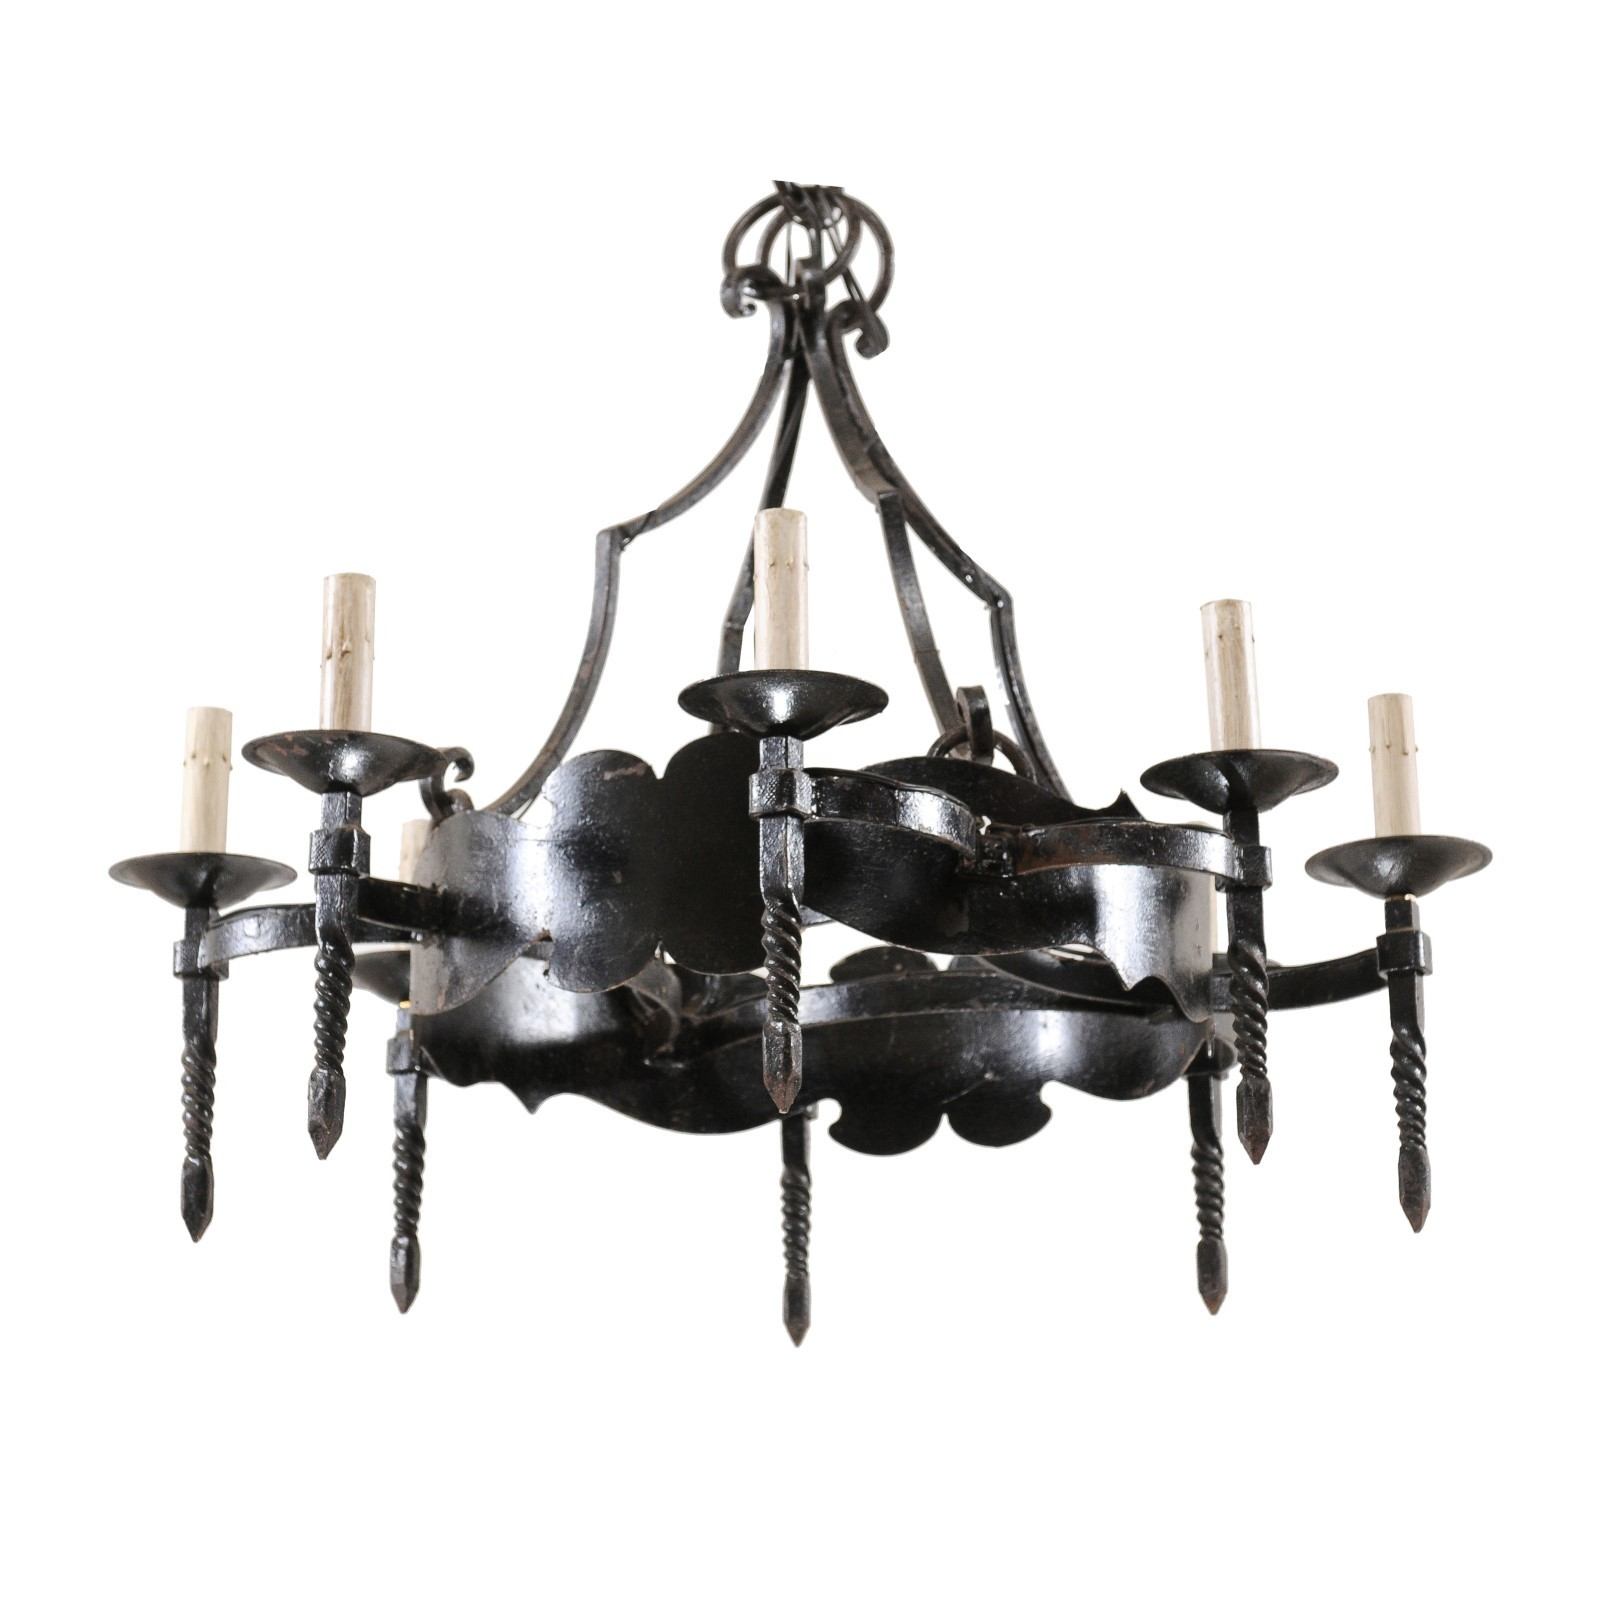 French Ring Chandelier w/Torch Lights